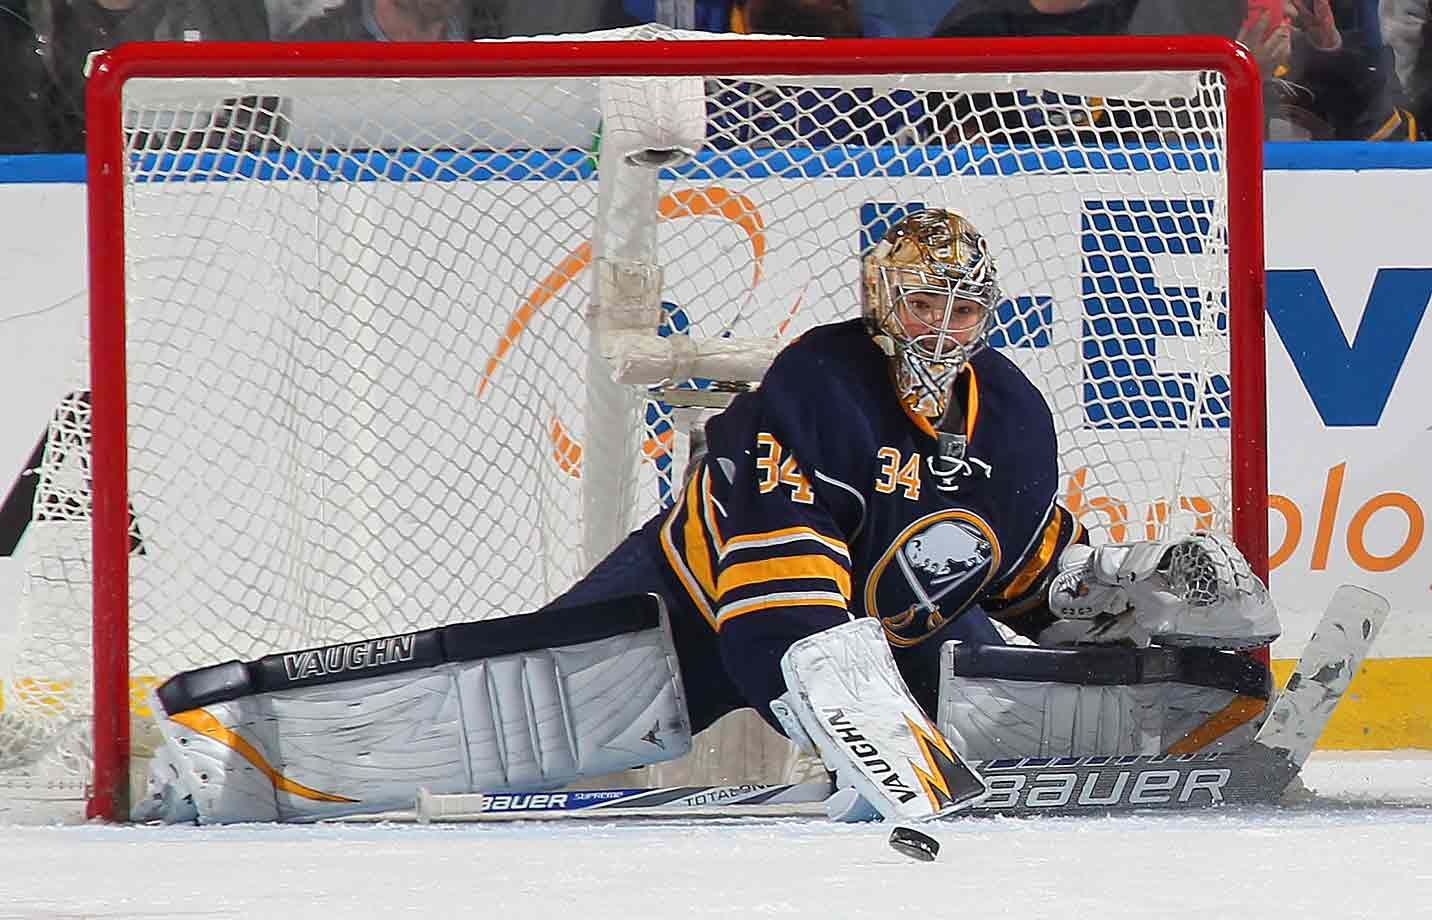 The Sabres netminder was the splitting image of efficiency as he made a save during the third period against the Canadiens at the First Niagara Center in Buffalo on November 5, 2014.